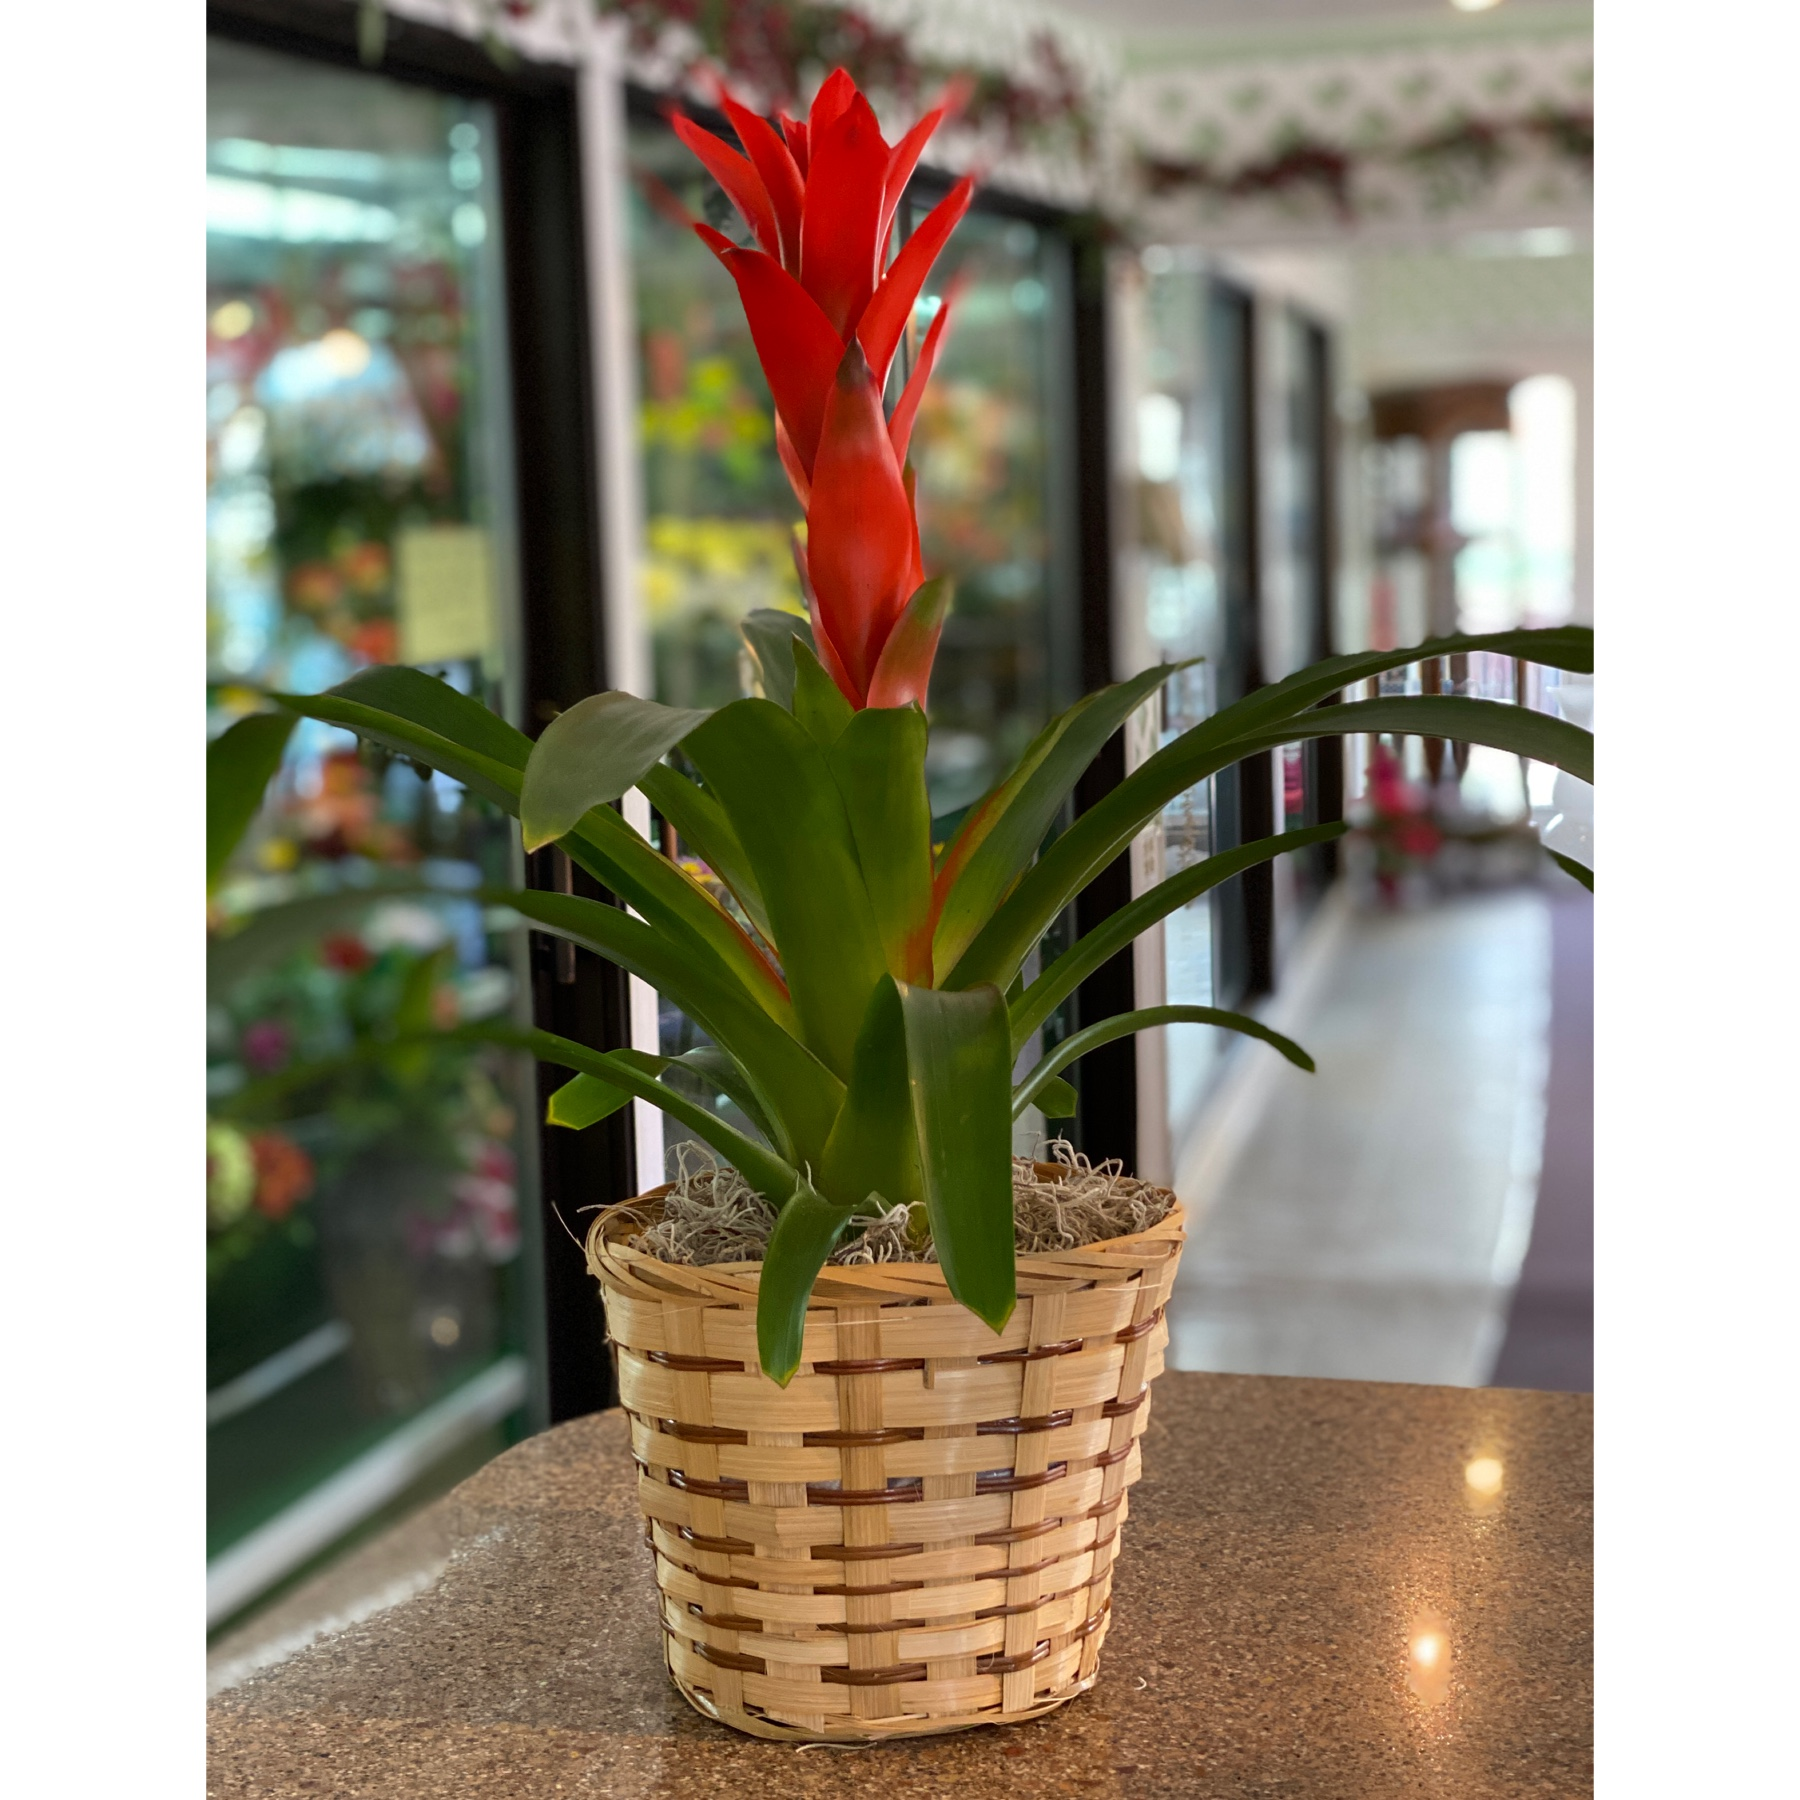 DiBella Flowers & Gifts Las Vegas - One of our gorgeous Brilliant red bromeliads in a basket